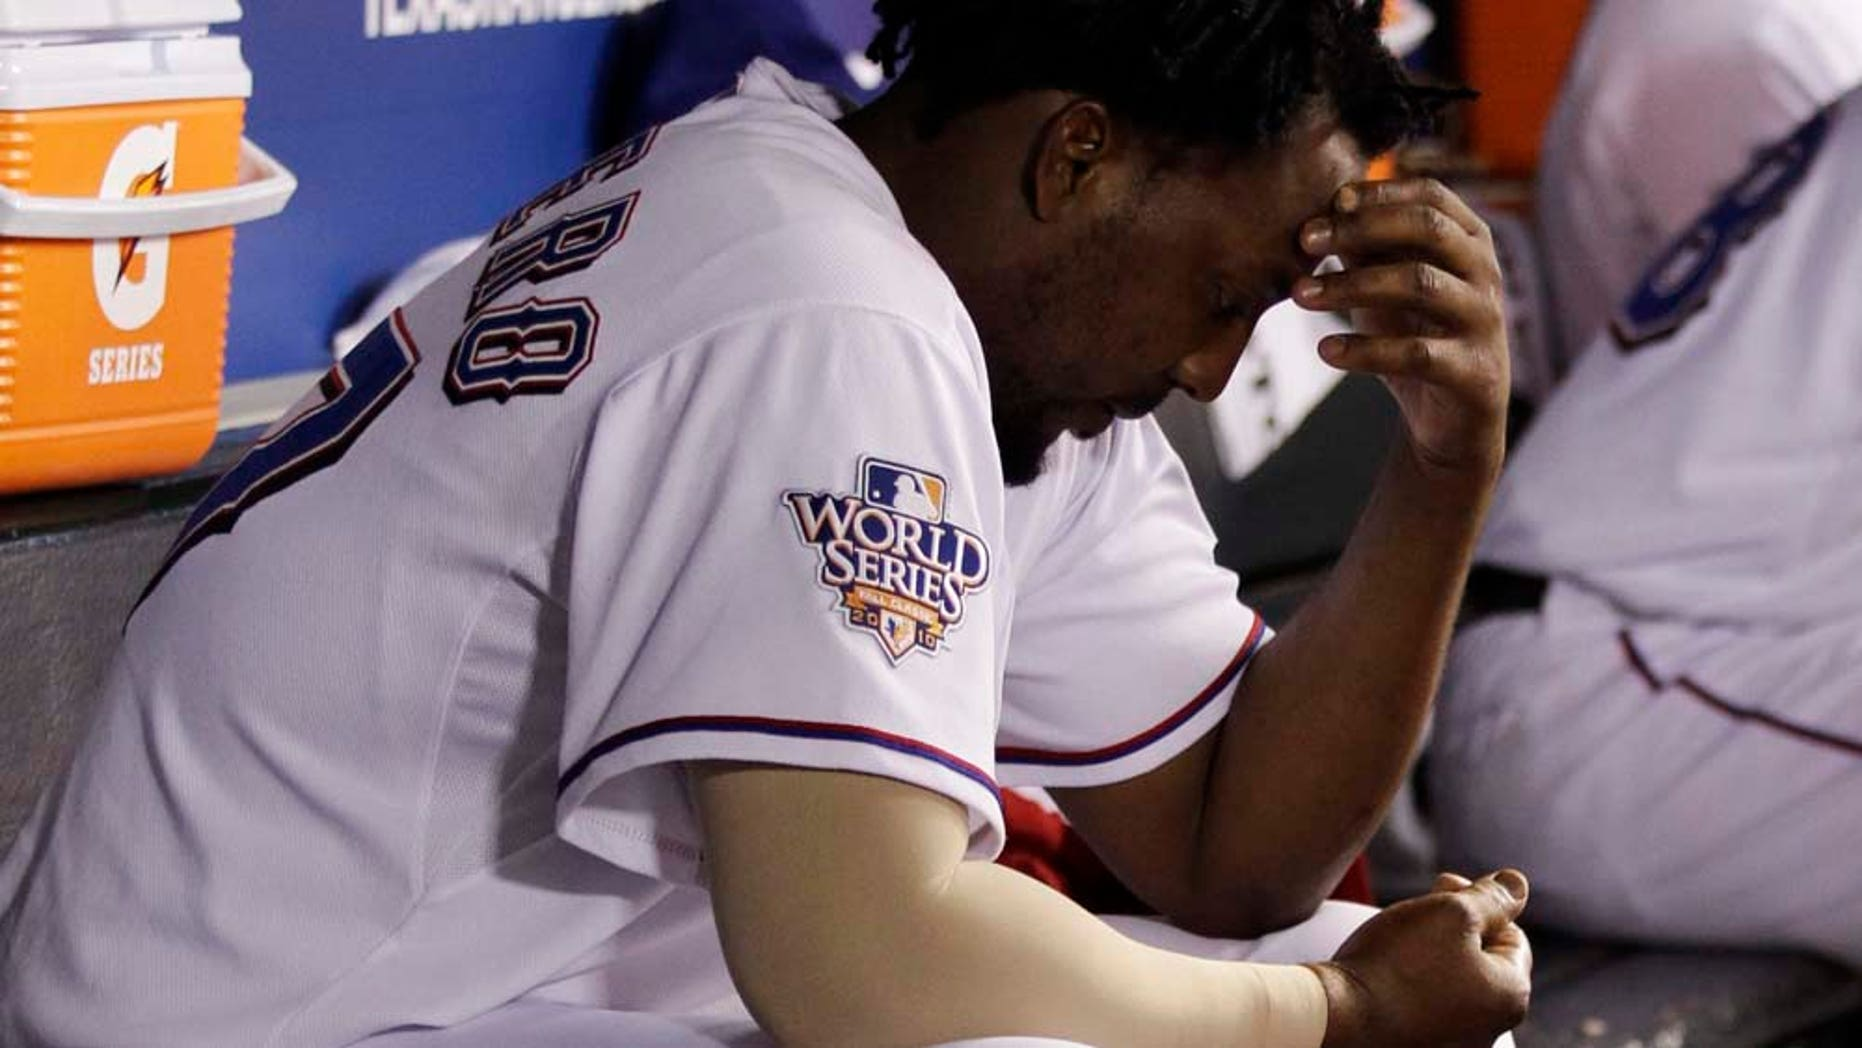 Texas Rangers' Vladimir Guerrero sits in the dugout after striking out during the seventh inning of Game 4 of baseball's World Series against the San Francisco Giants Sunday, Oct. 31, 2010, in Arlington, Texas. (AP Photo/David J. Phillip)